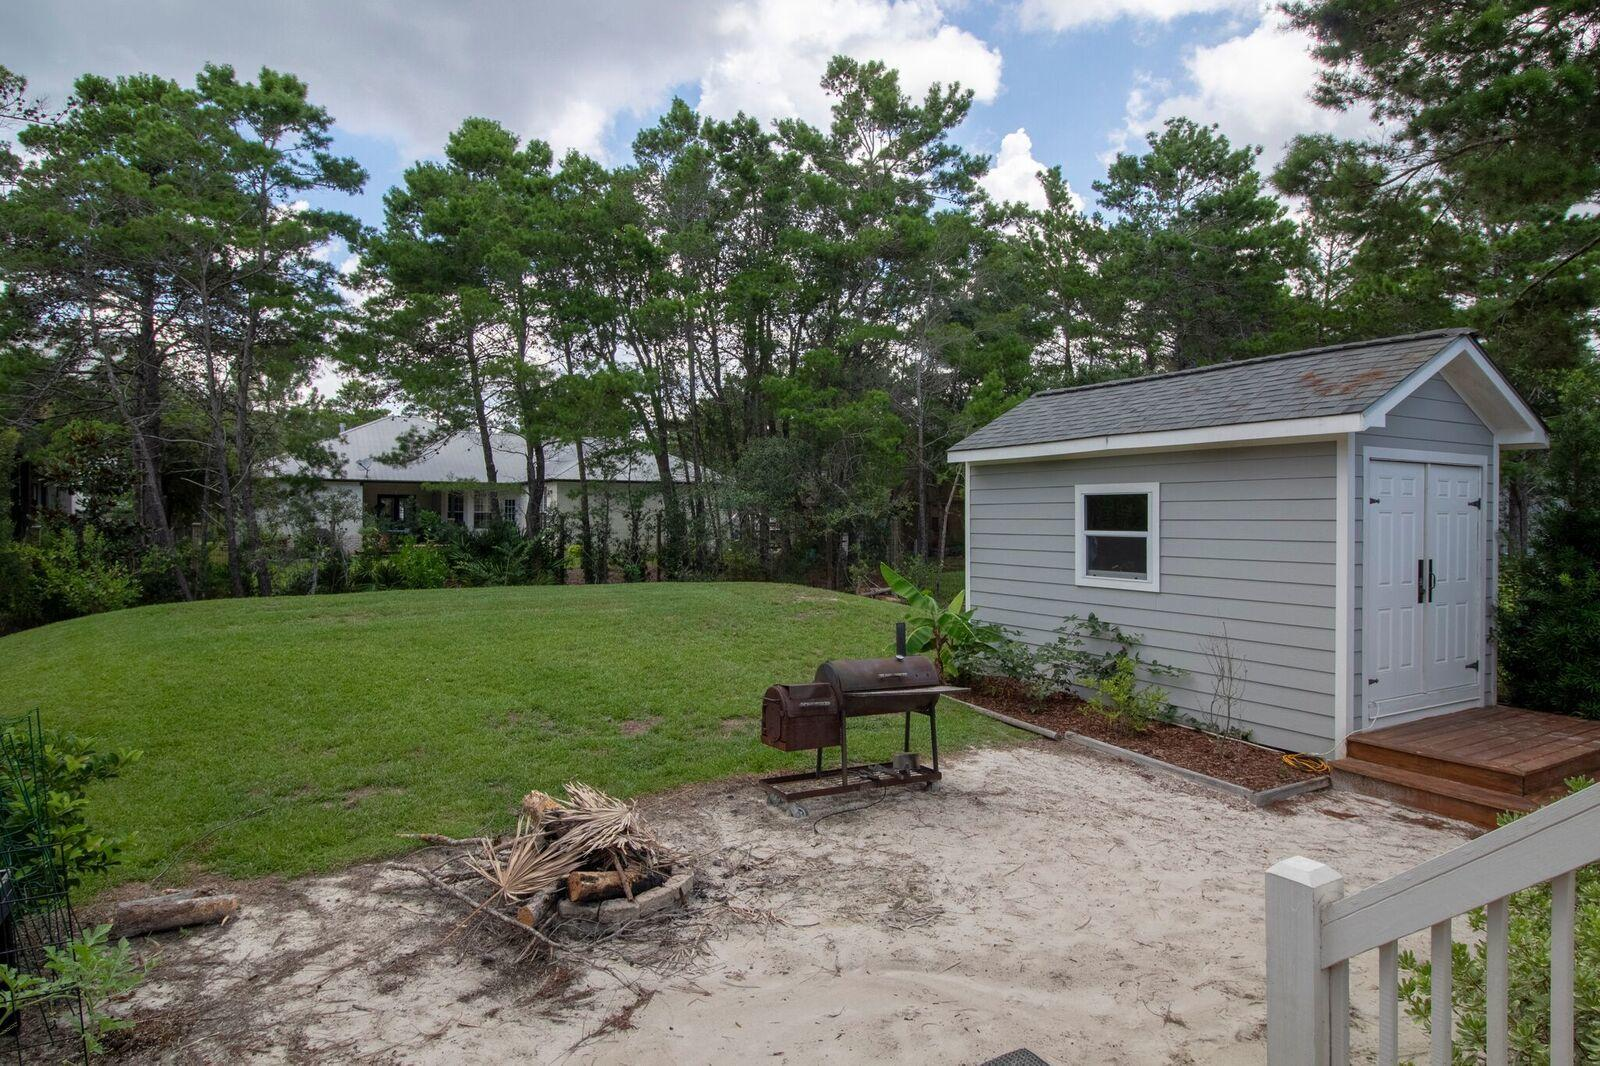 1406 County Rd 283,Santa Rosa Beach,Florida 32459,2 Bedrooms Bedrooms,2 BathroomsBathrooms,Single family residence,County Rd 283,20131126143817002353000000